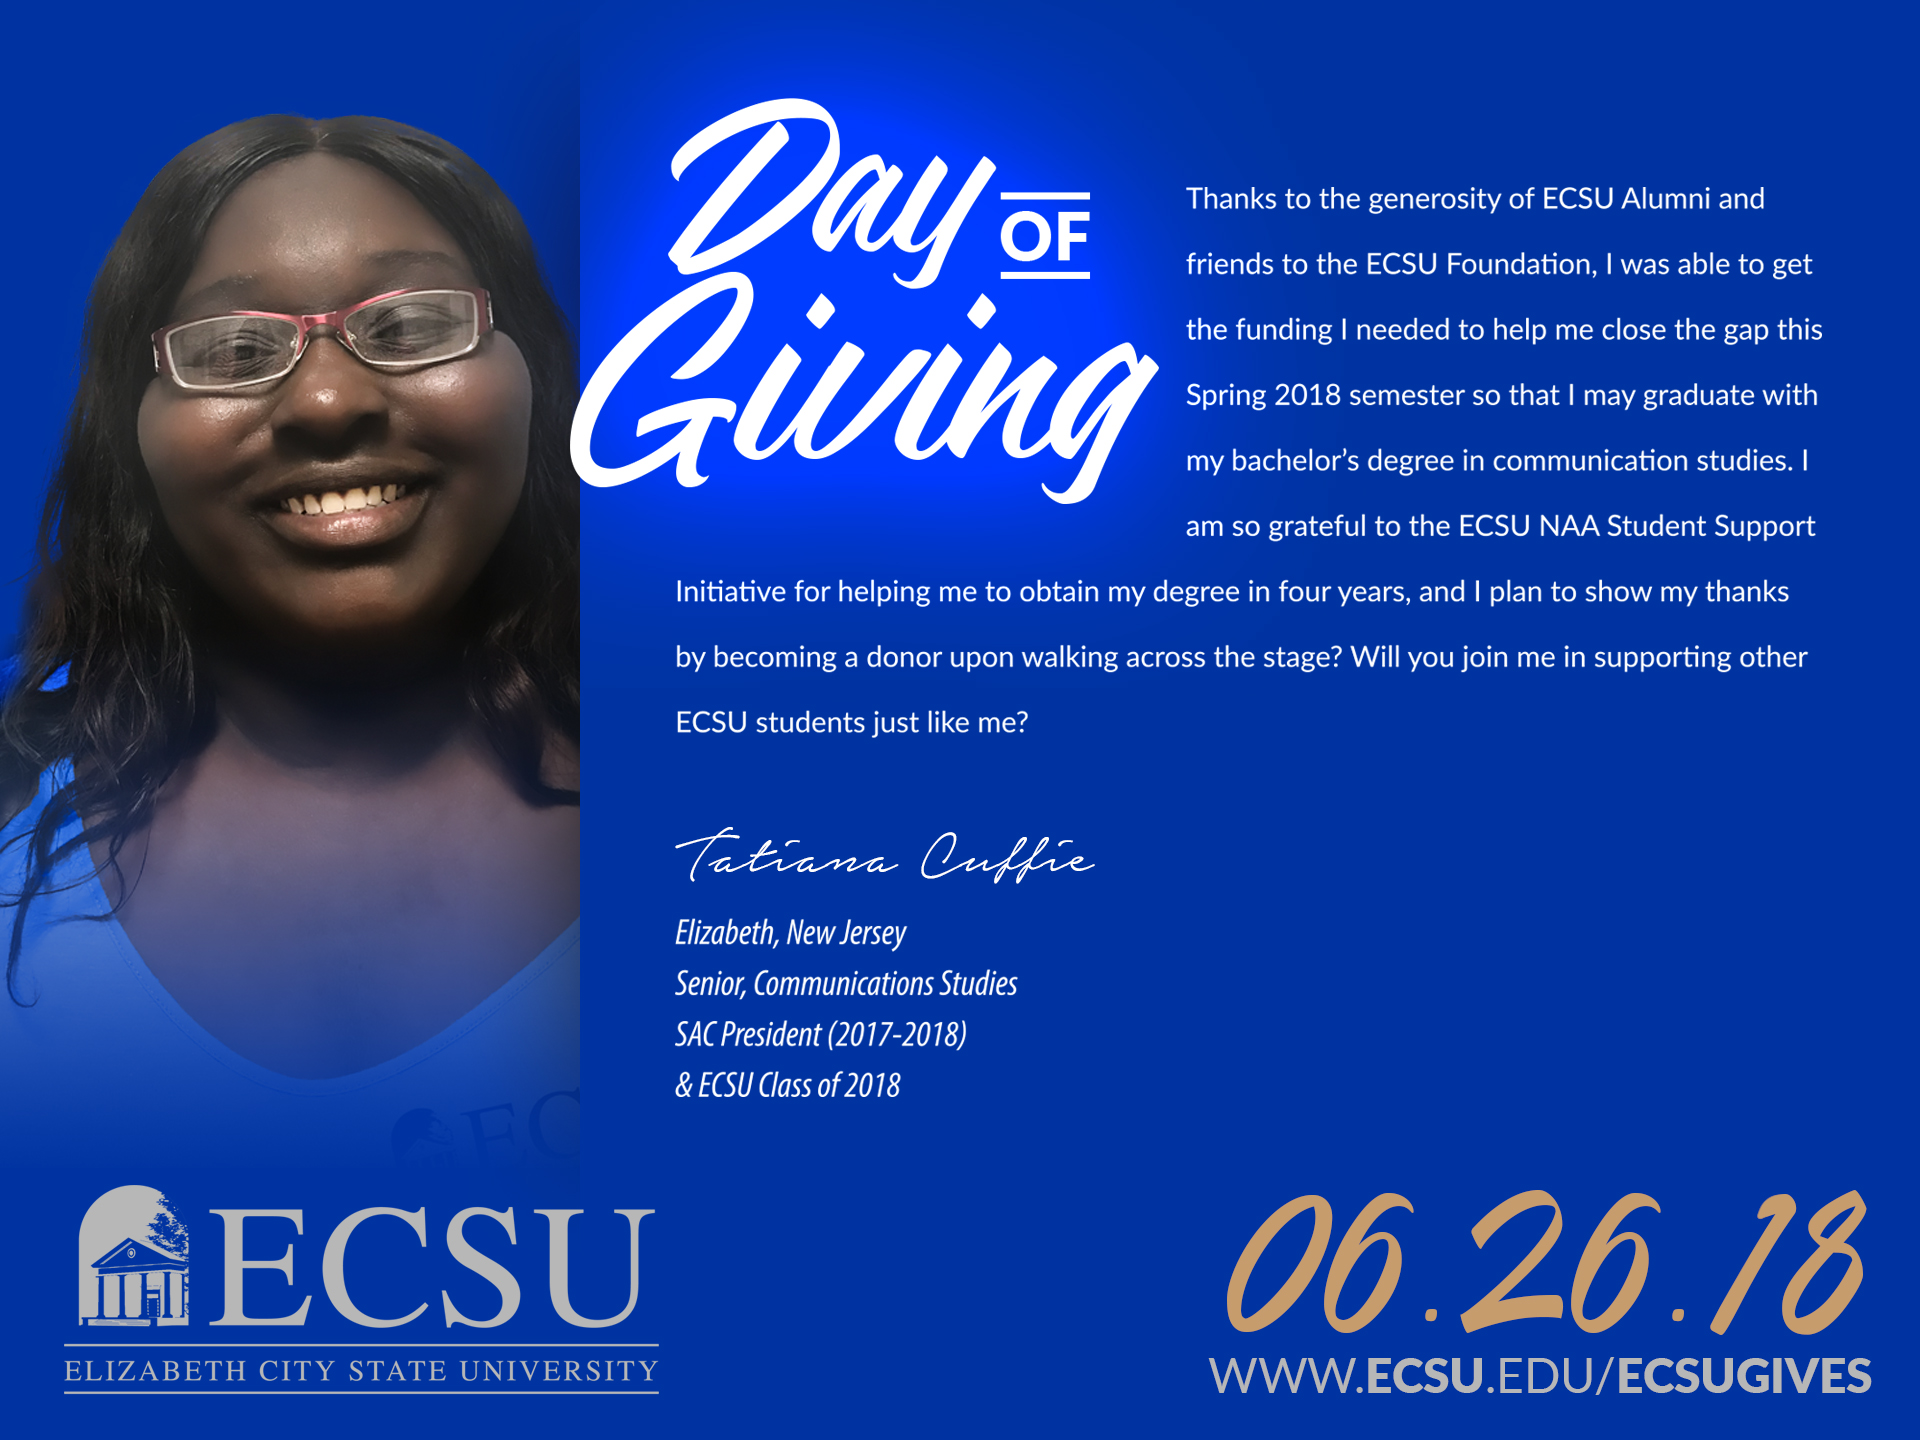 Ecsu day of giving student message5